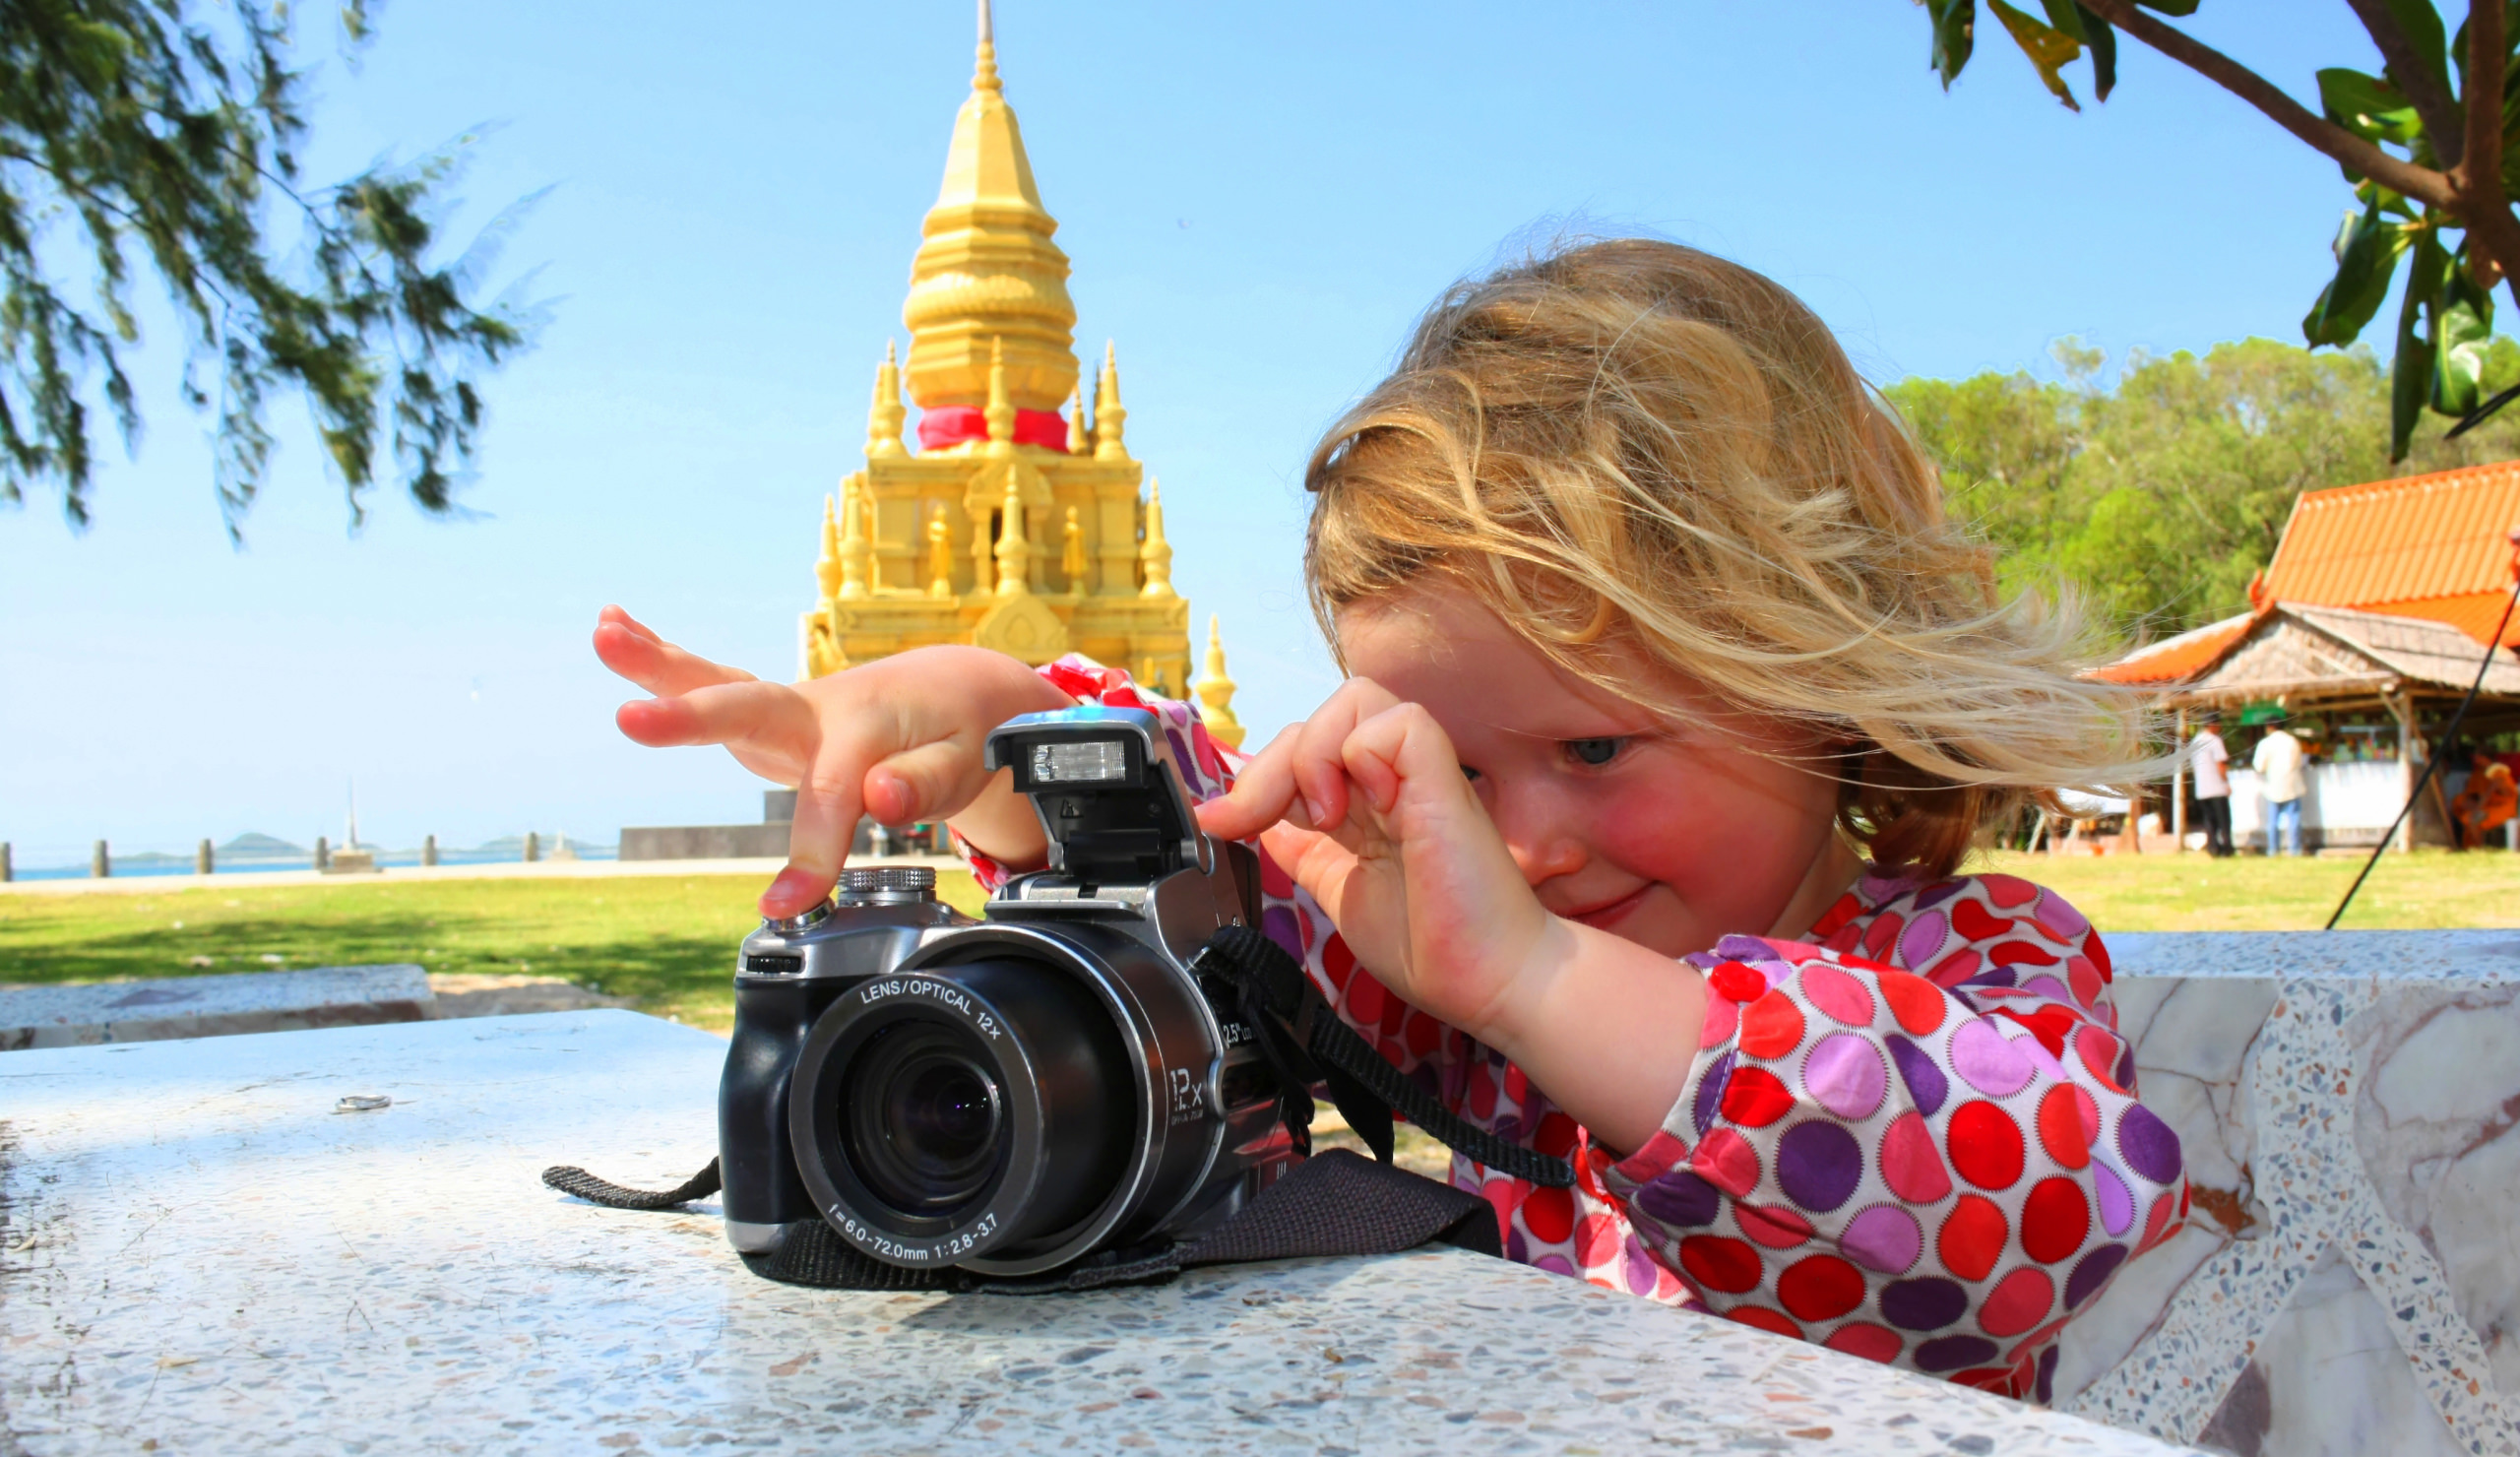 Girl taking a picture on a flat surface